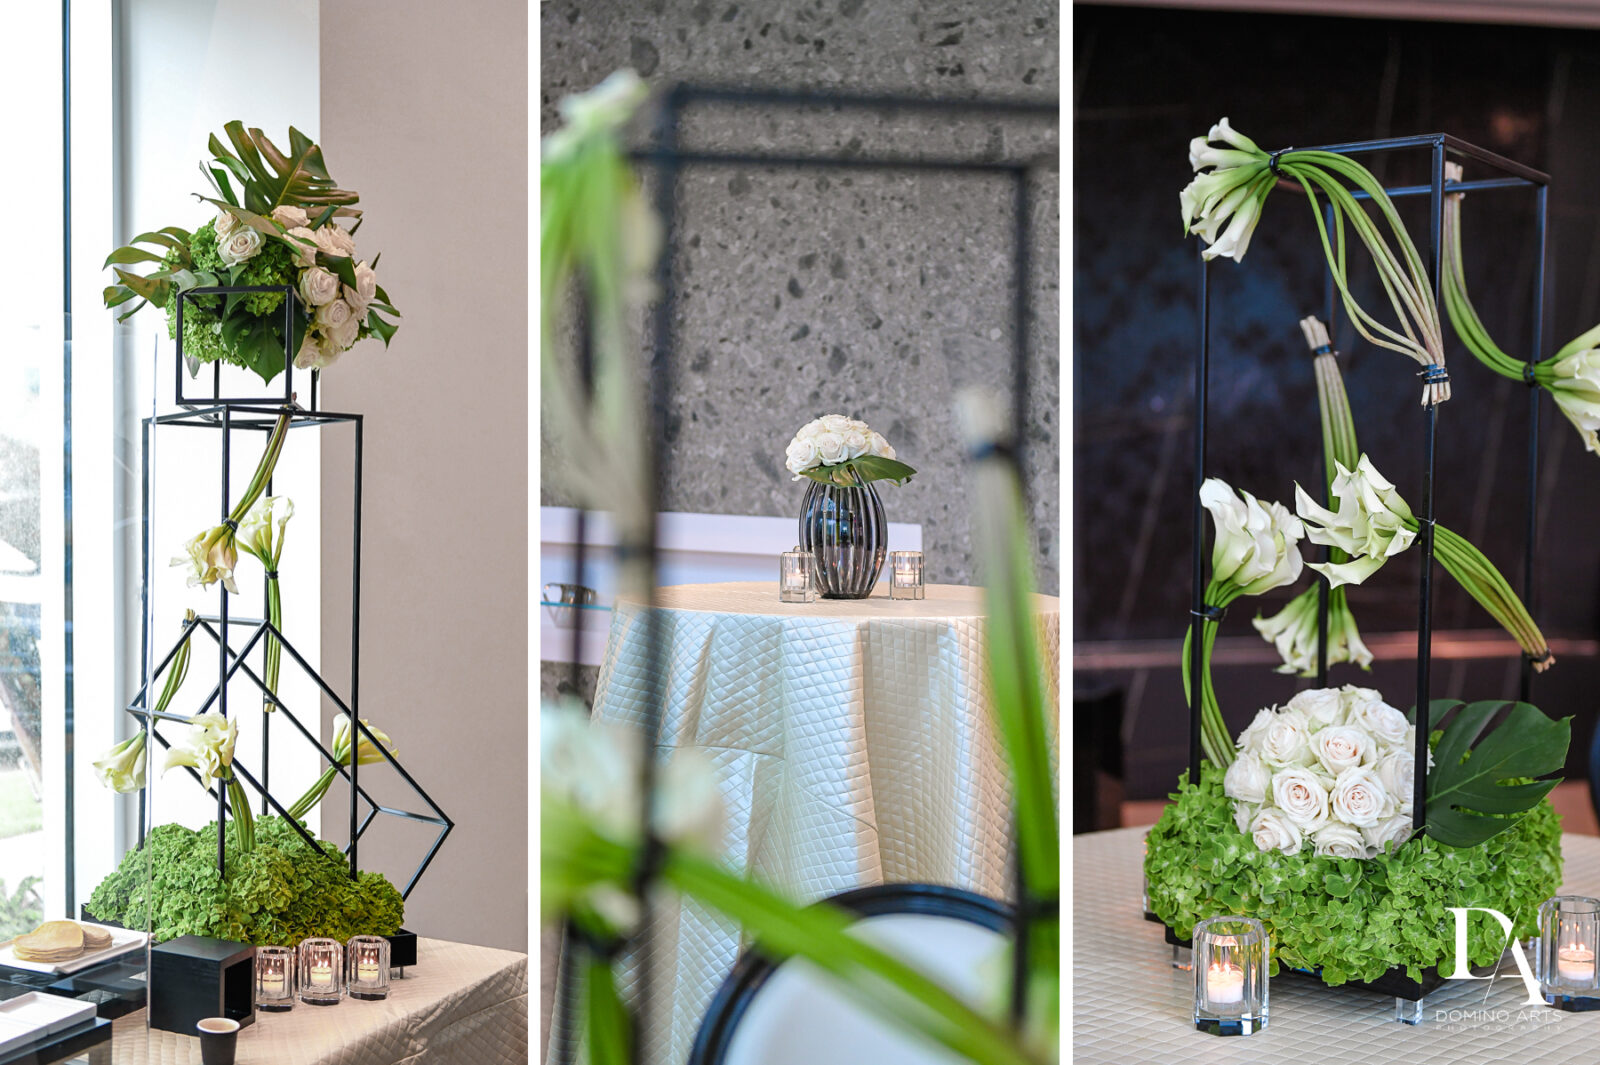 simple decor ideas for Bar Mitzvah Ceremony at Aventura Chabad by Domino Arts Photography